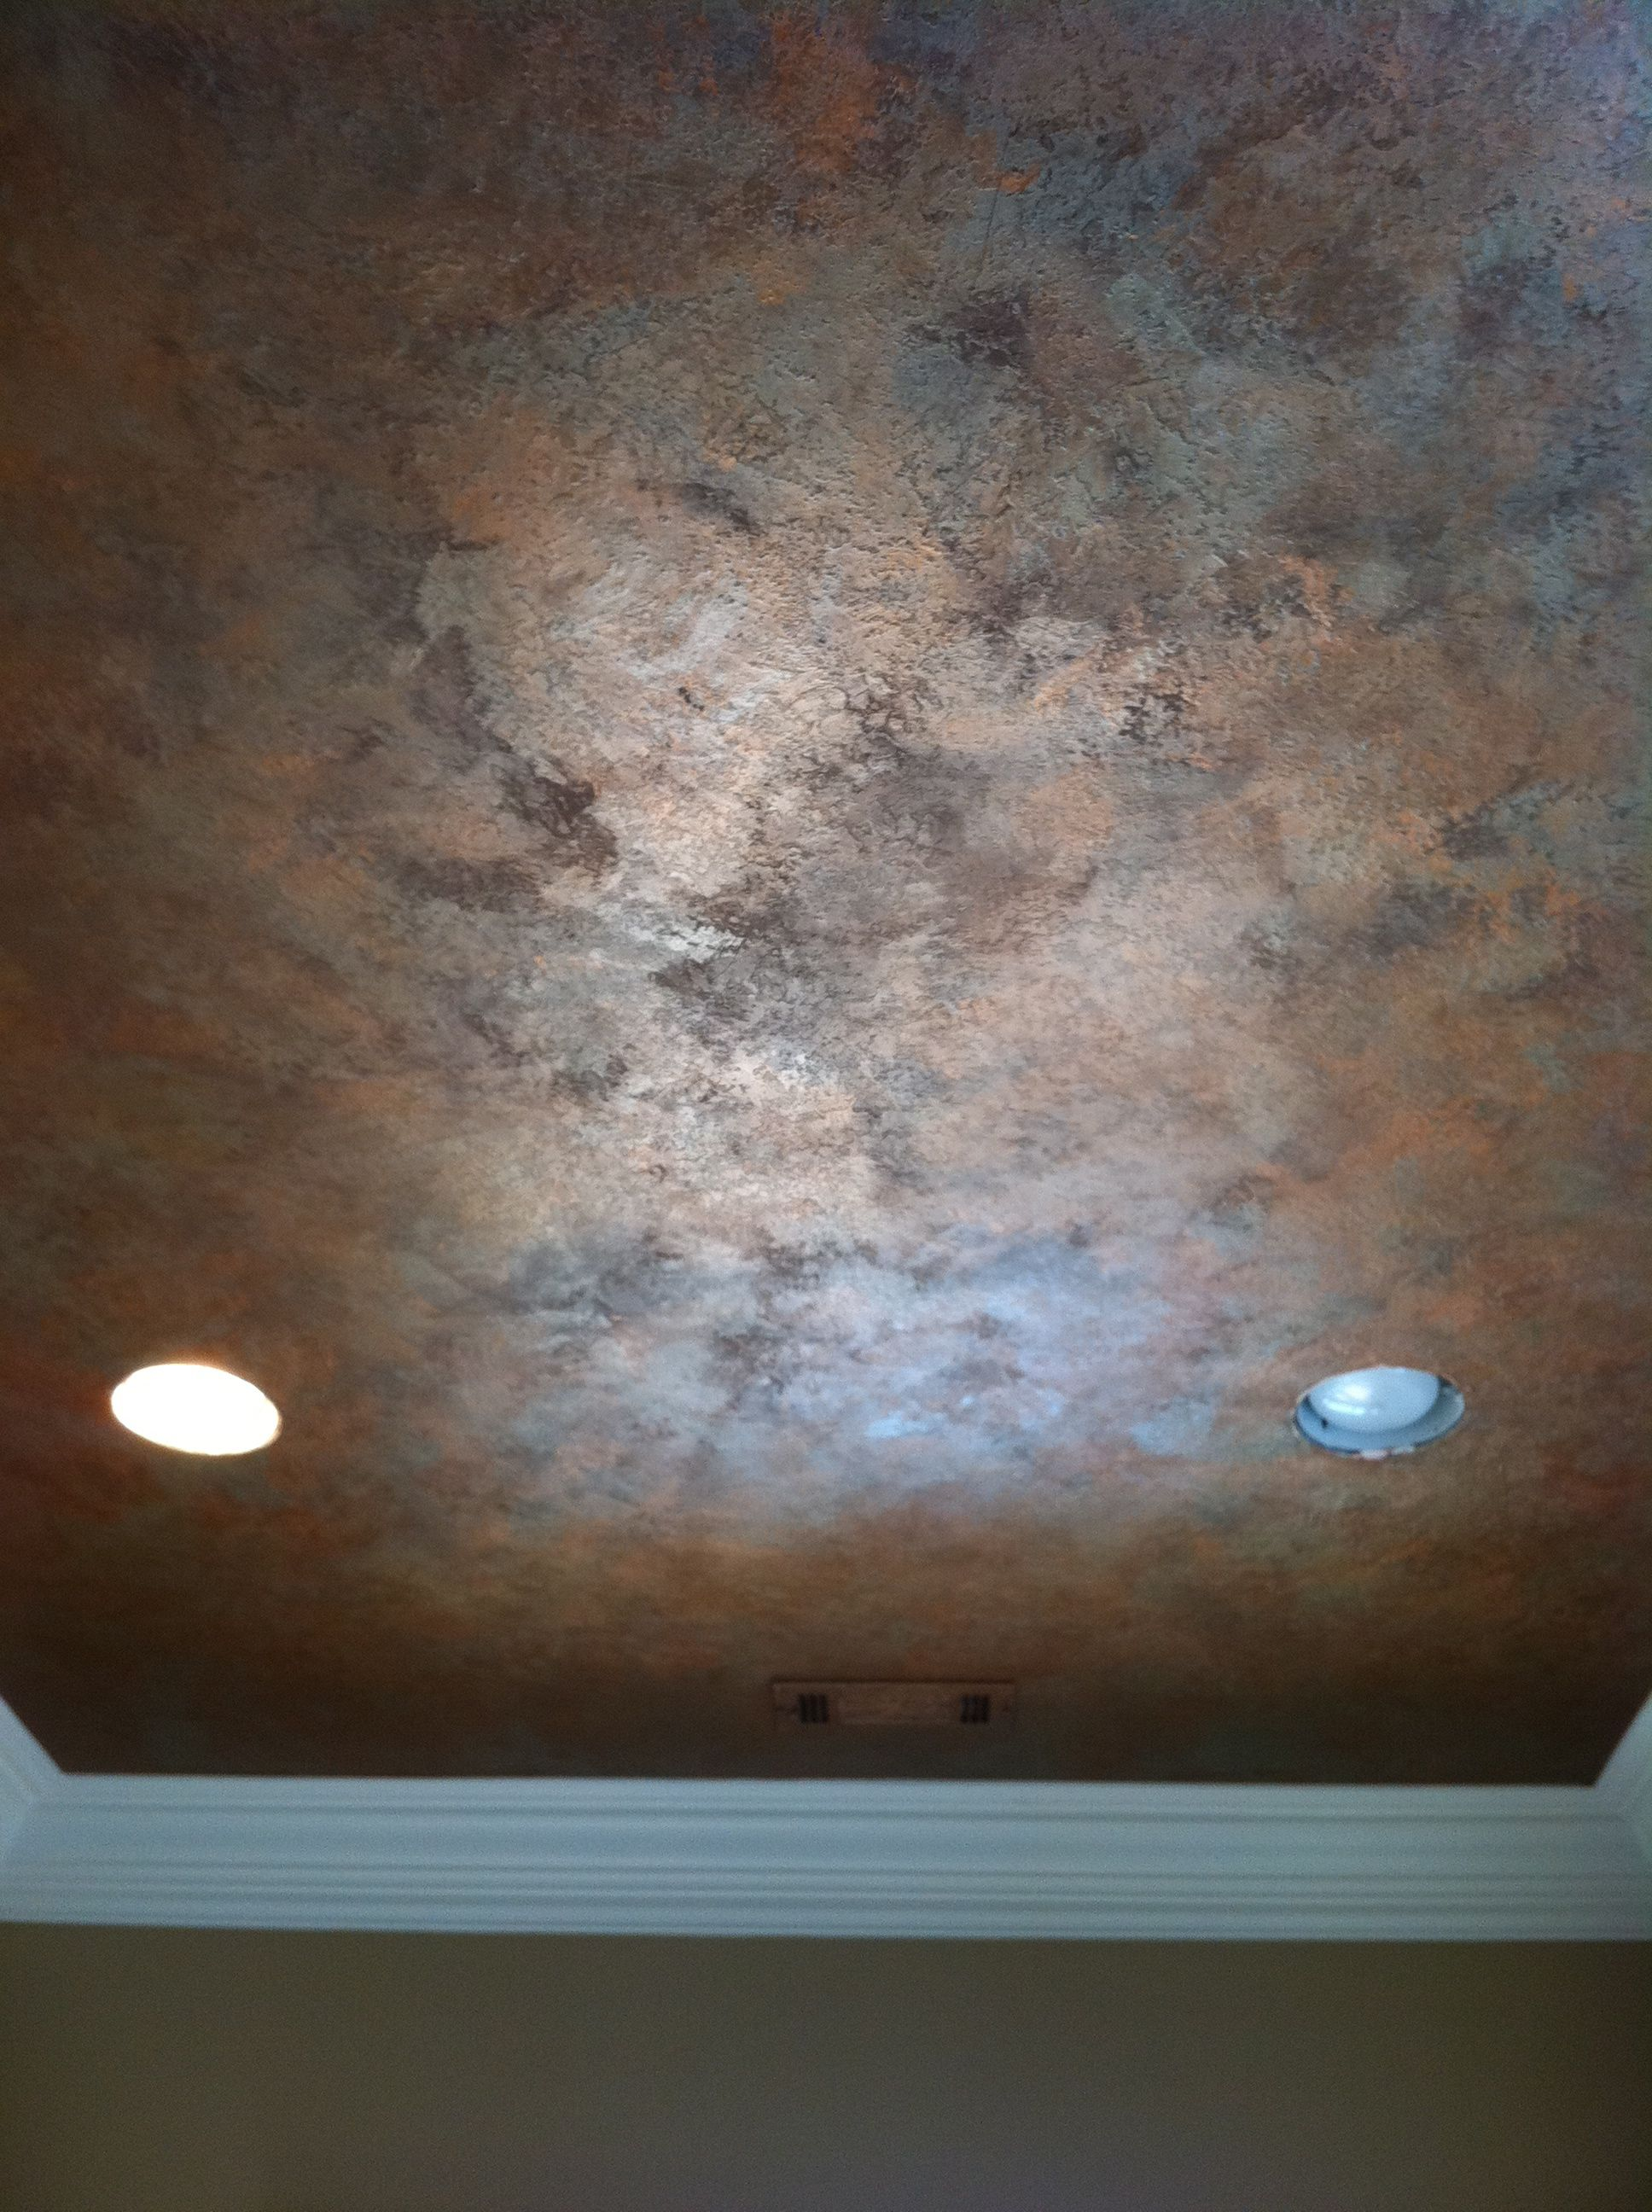 Knock Down Textured Finish With Metallic Wa On Ceiling By Debbie Houchens Interiors